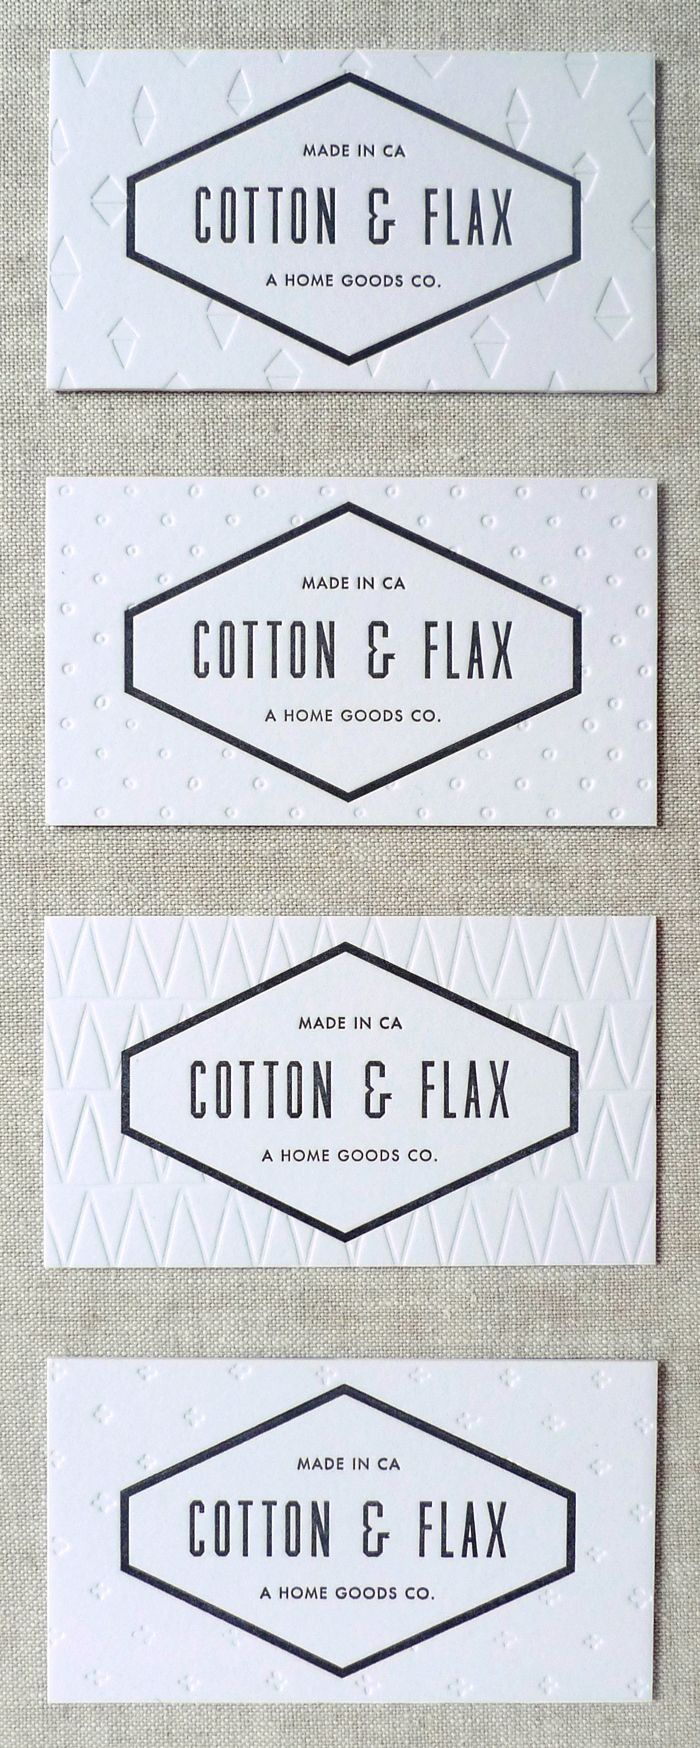 Nice ideas to have different textures on your cards - very tactile!